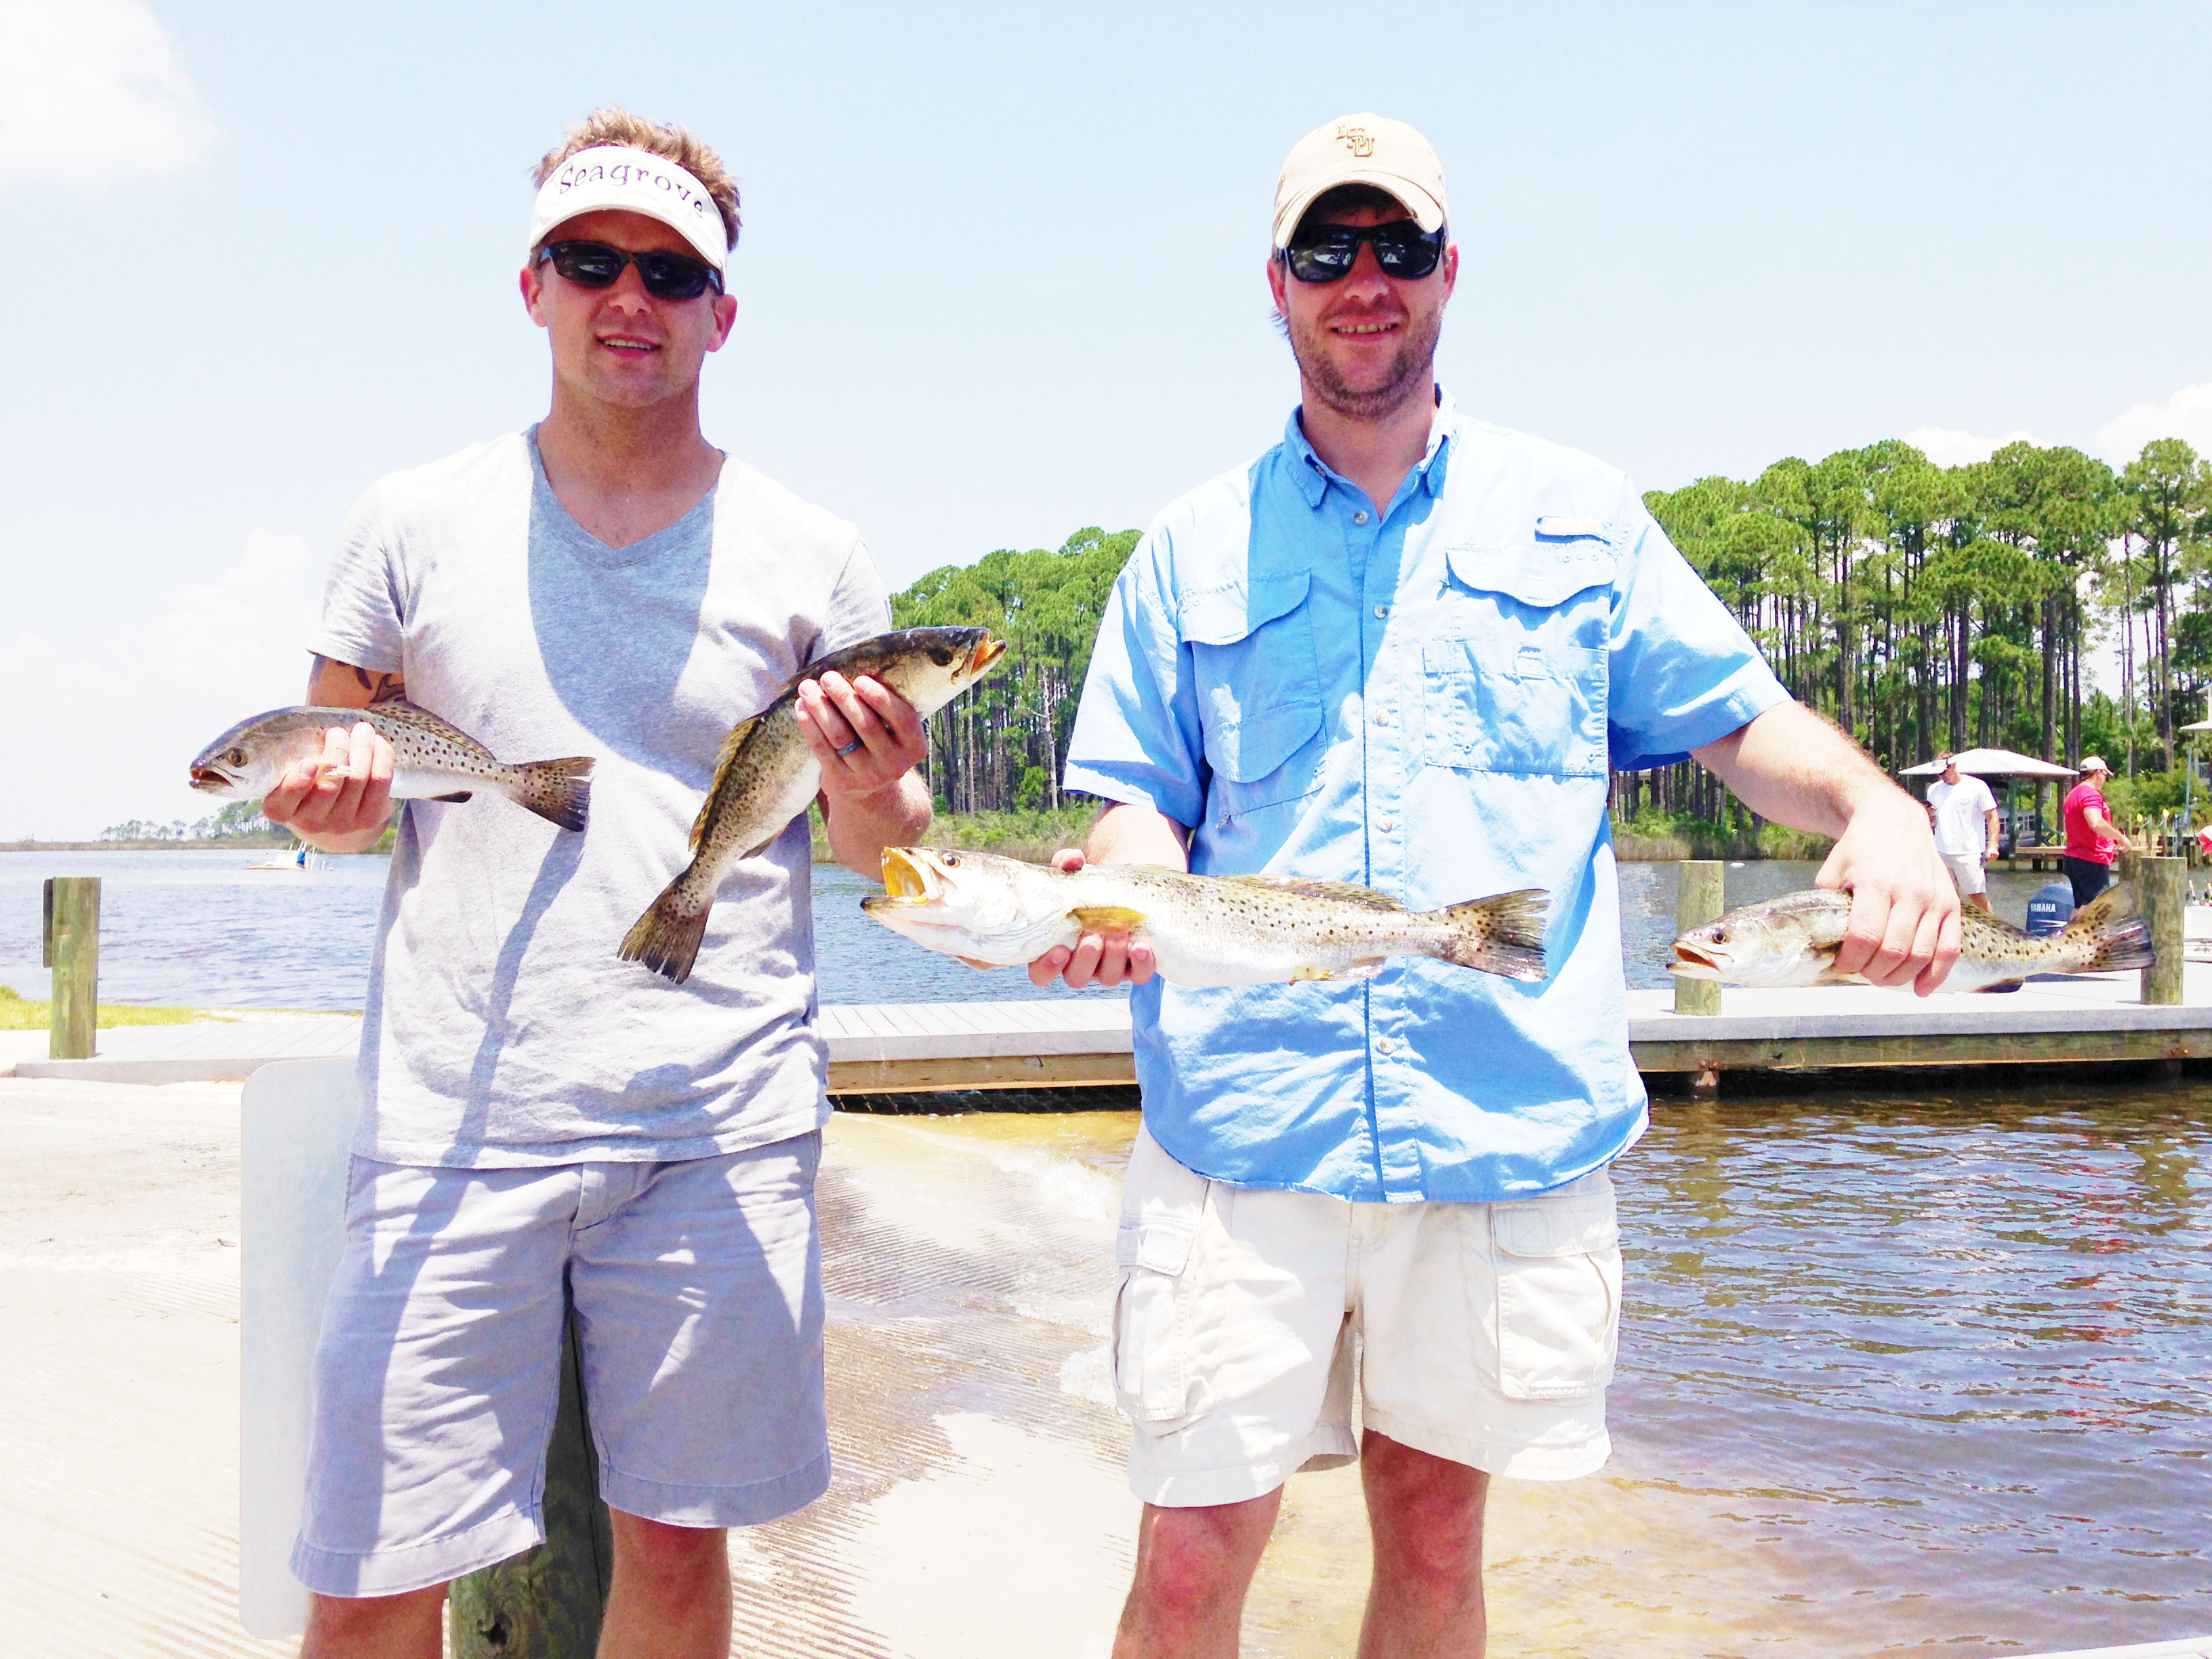 30A Fishing - Grayton Fishing - Florida Boy Adventures